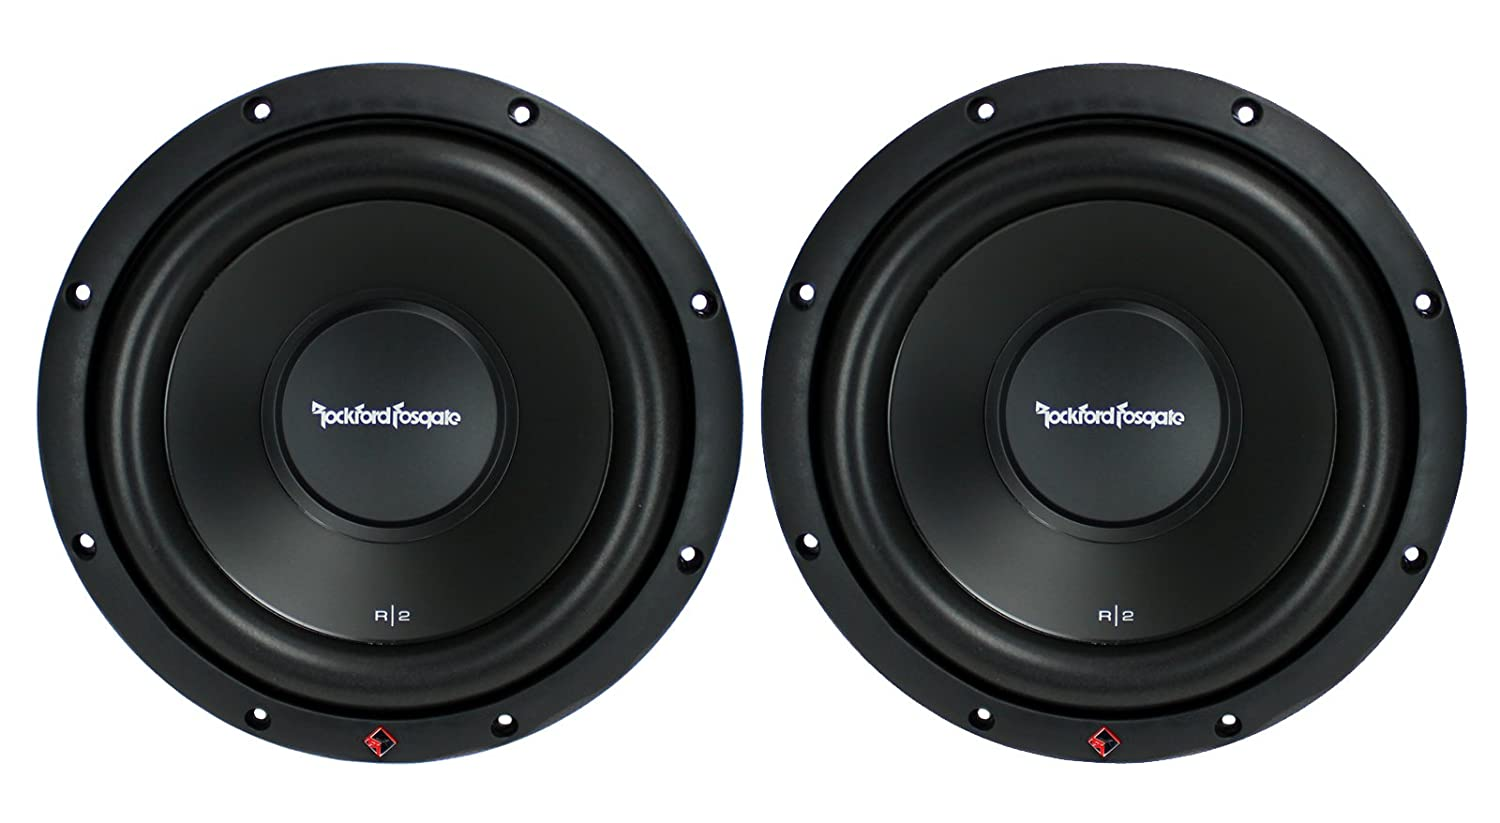 2 New Rockford Fosgate R2d2 10 1000w Ohm Car Inch Sub Wiring Diagram Audio Subwoofers Subs R2d210 Electronics